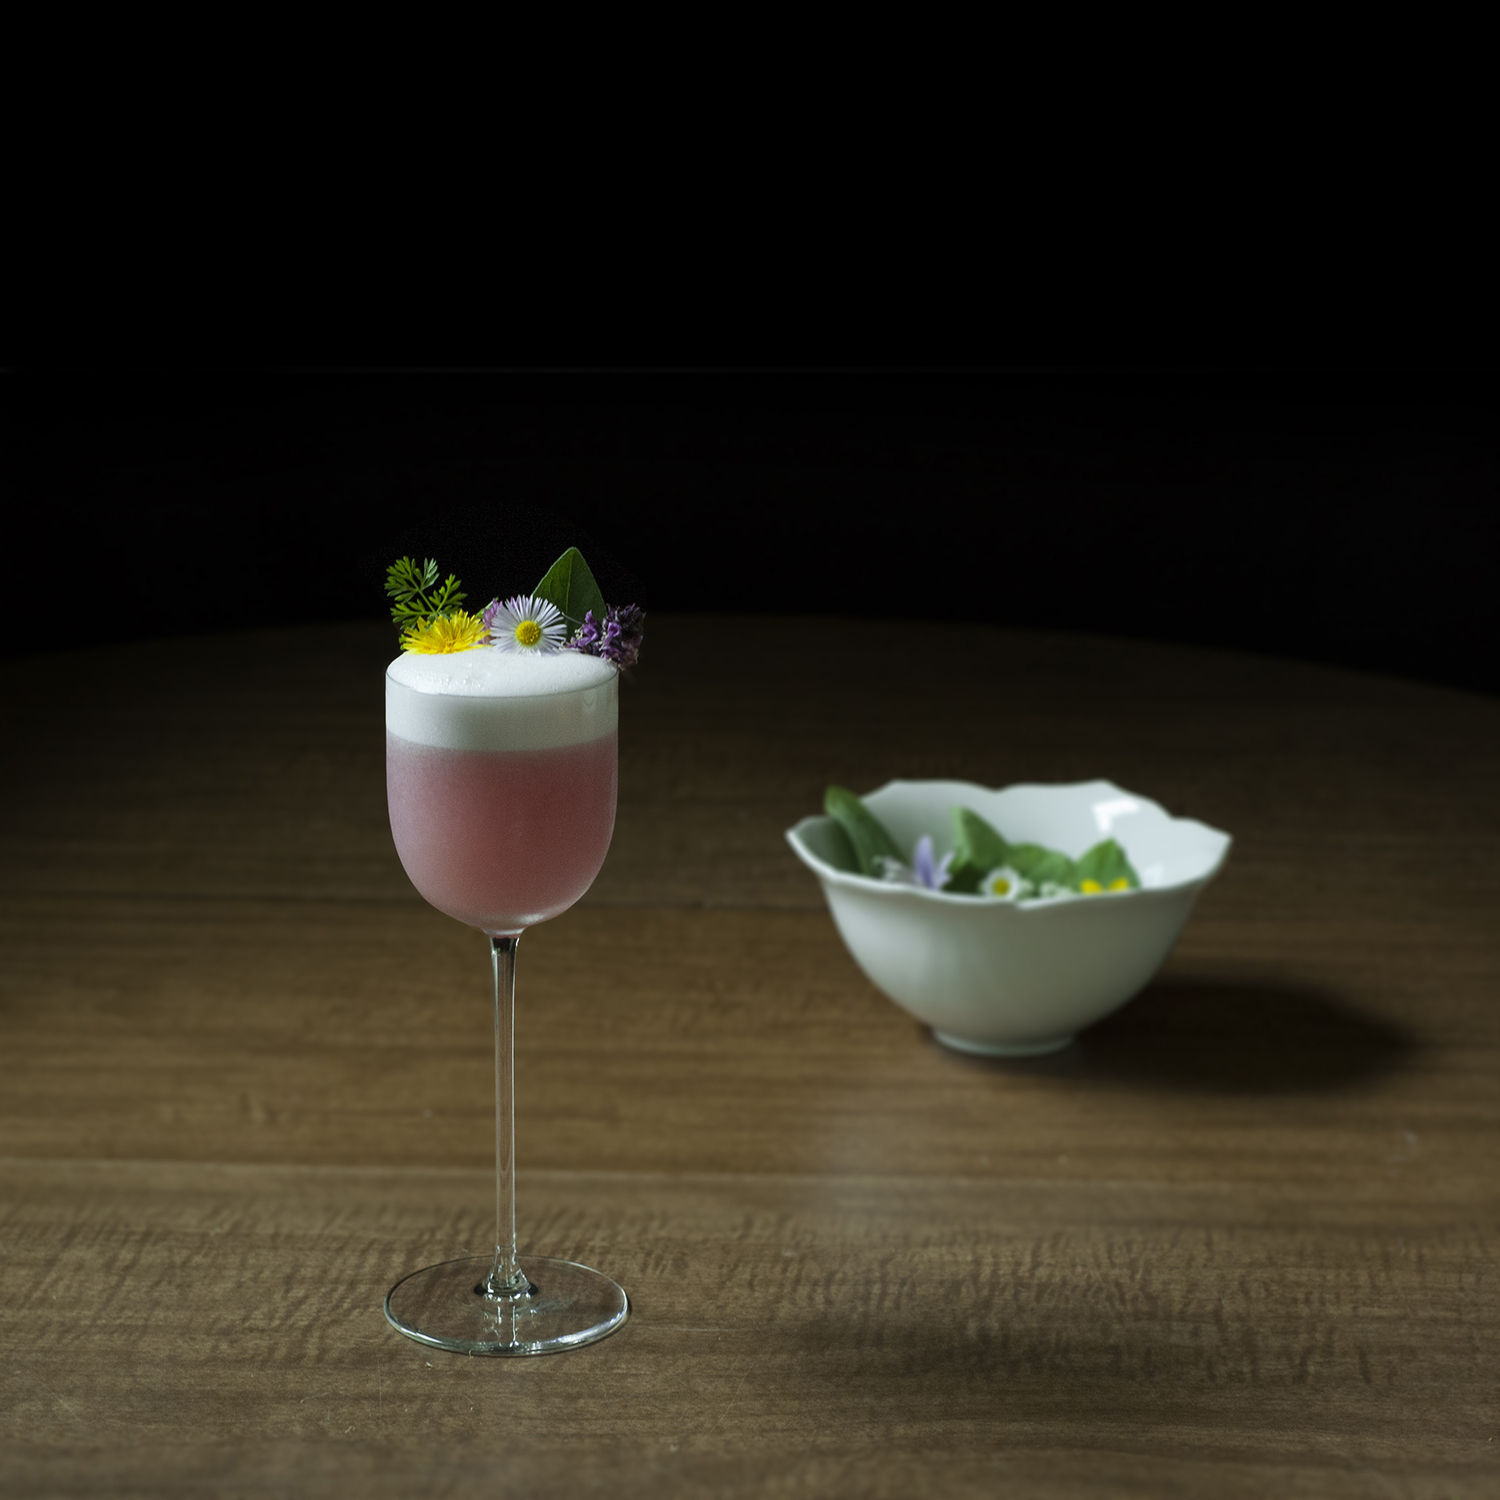 edible flowers and other foraged flora for cocktails